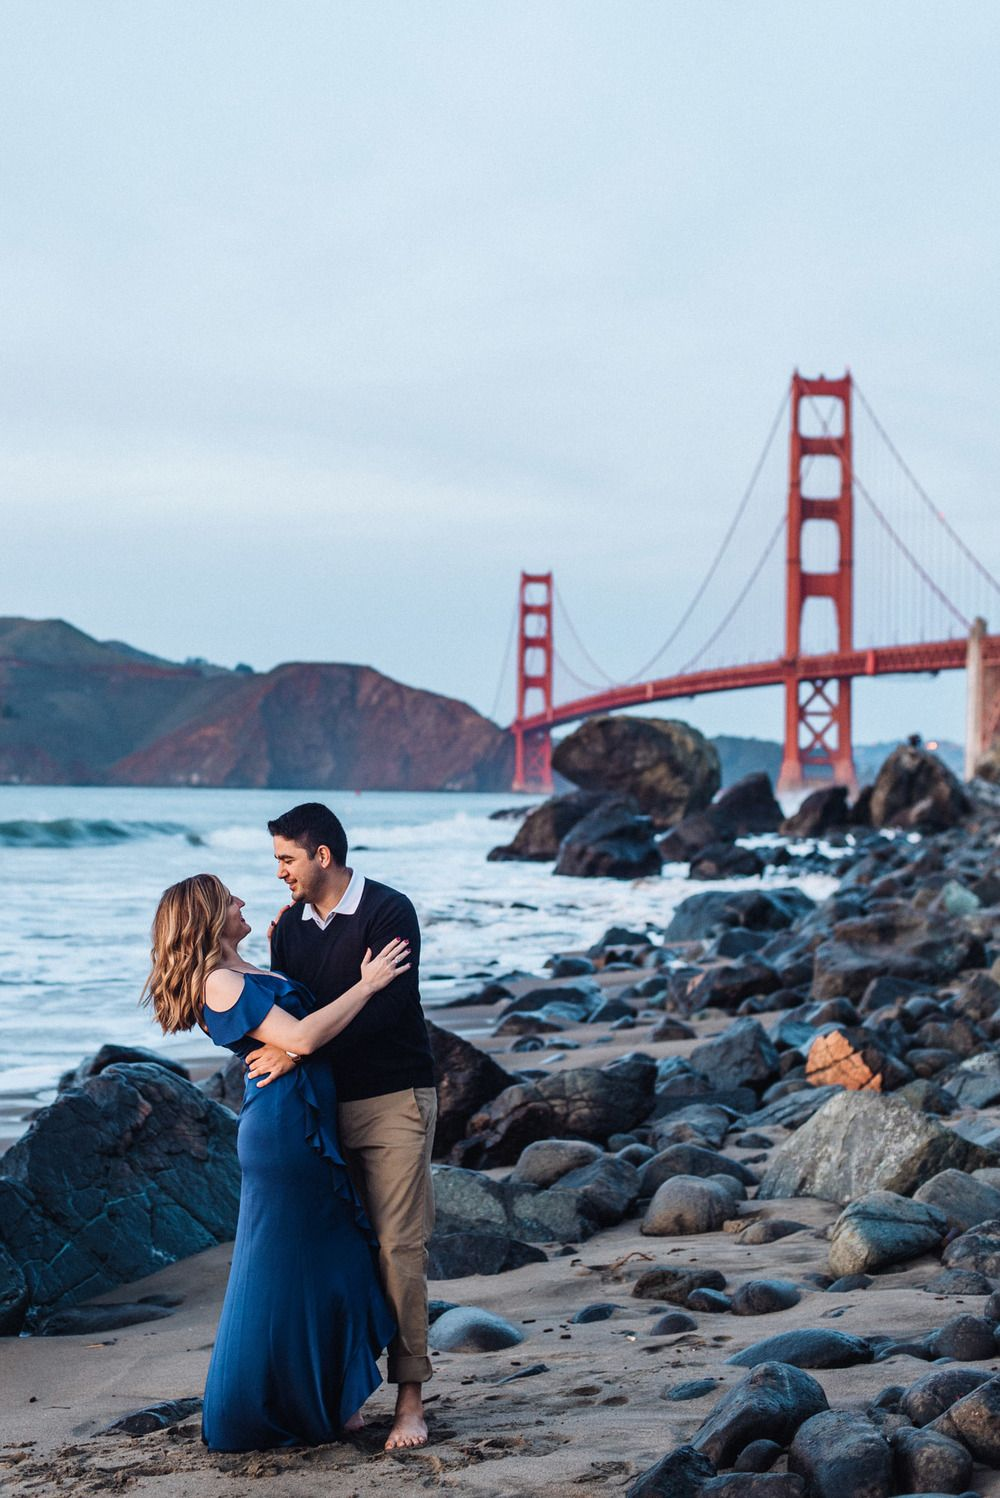 Top 5 Best Places To Take Photos In San Francisco San Francisco Engagement Photos Engagement Photoshoot Engagement Photo Outfits